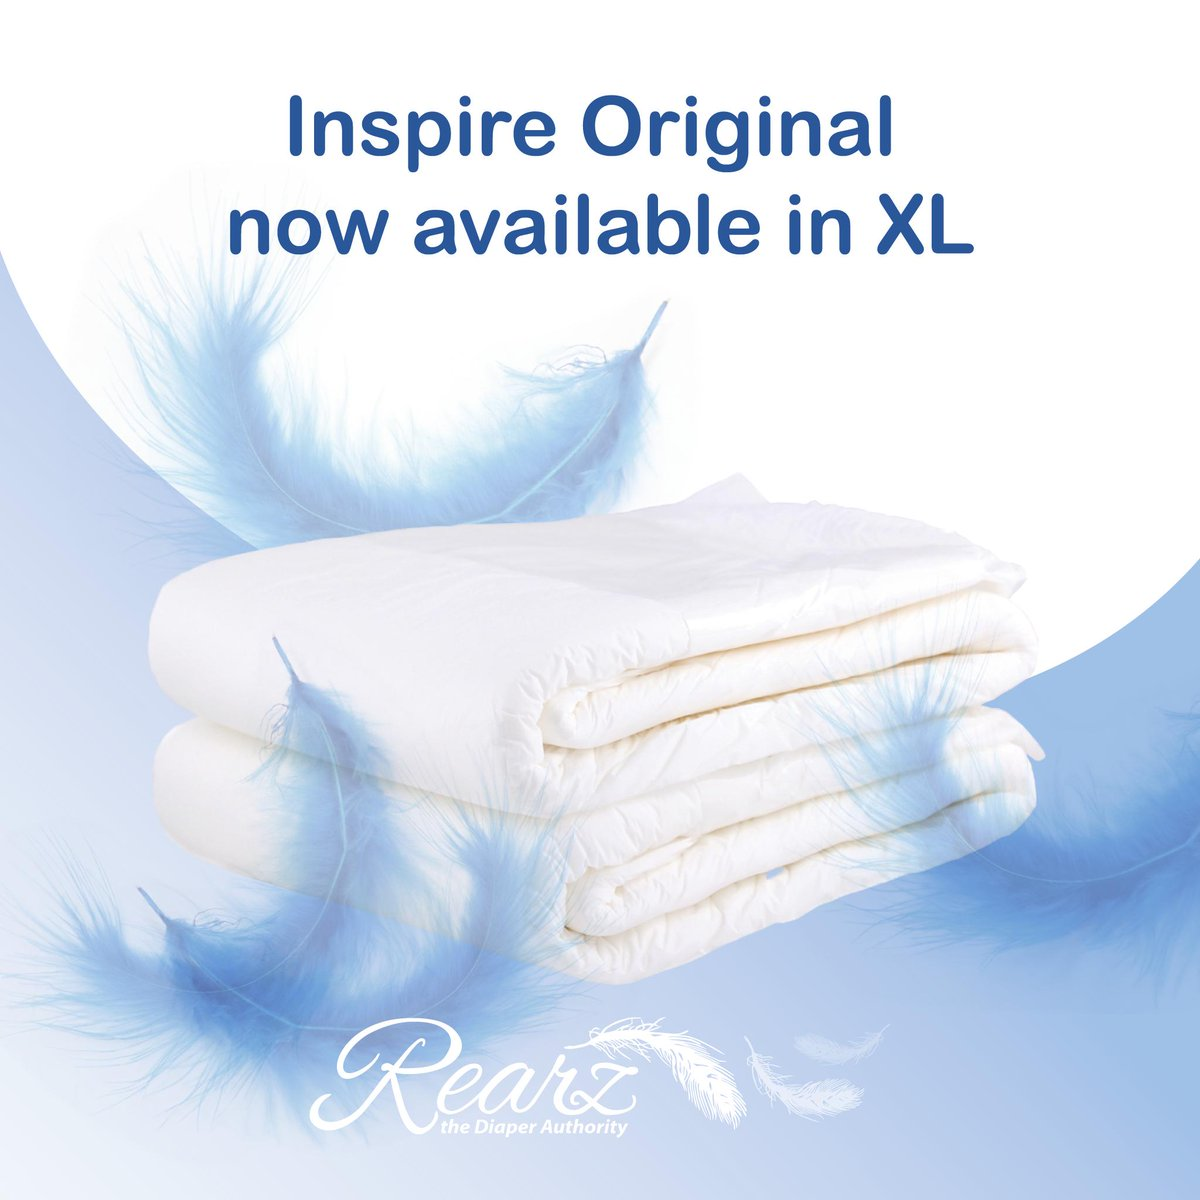 The Best Daily Diaper just got better! Now Available in XL!  https://t.co/b6Z2o2PgsL  #rearz #rearzinc #rearzdiapers #adultdiapers #adultnappies #diaperlife #abdl #cglg #cglb #diaperbutt #incontinence #abdldiapers #adultbaby #diaperedbum #ageplay #littlespace #abdlboy #abdlgirl https://t.co/WPBI58vQas